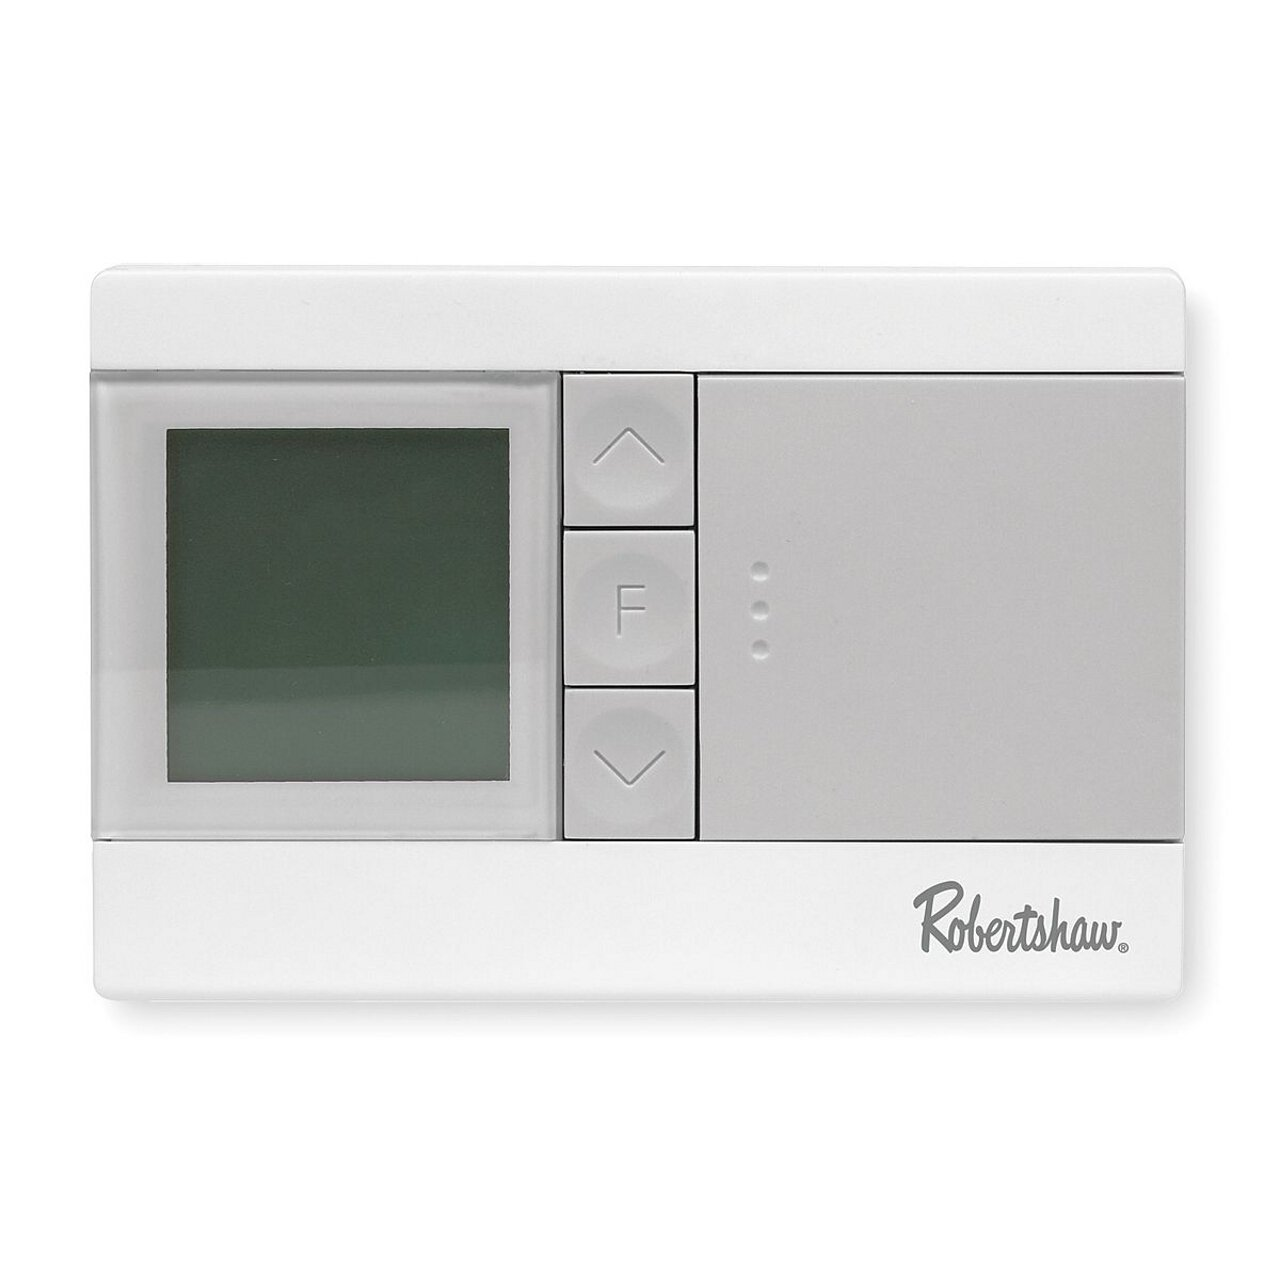 Robertshaw PS2110 1 Heat/1 Cool Digital Non-Programmable Thermostat